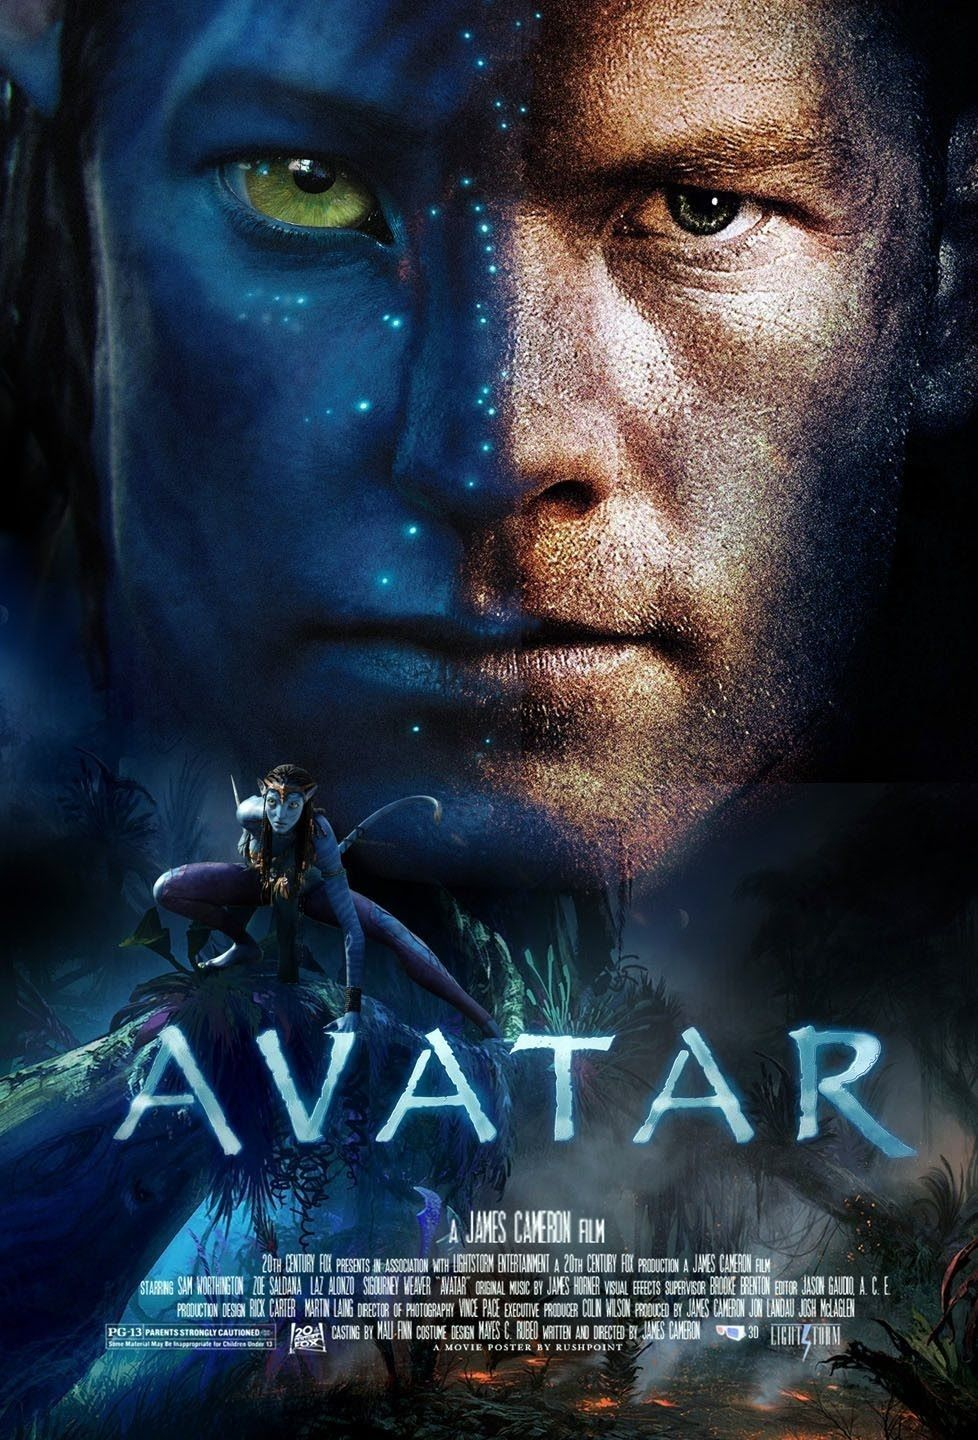 Pin By Jela Prince On All Time Fave Movies Avatar Full Movie Avatar 2 Full Movie Avatar Movie